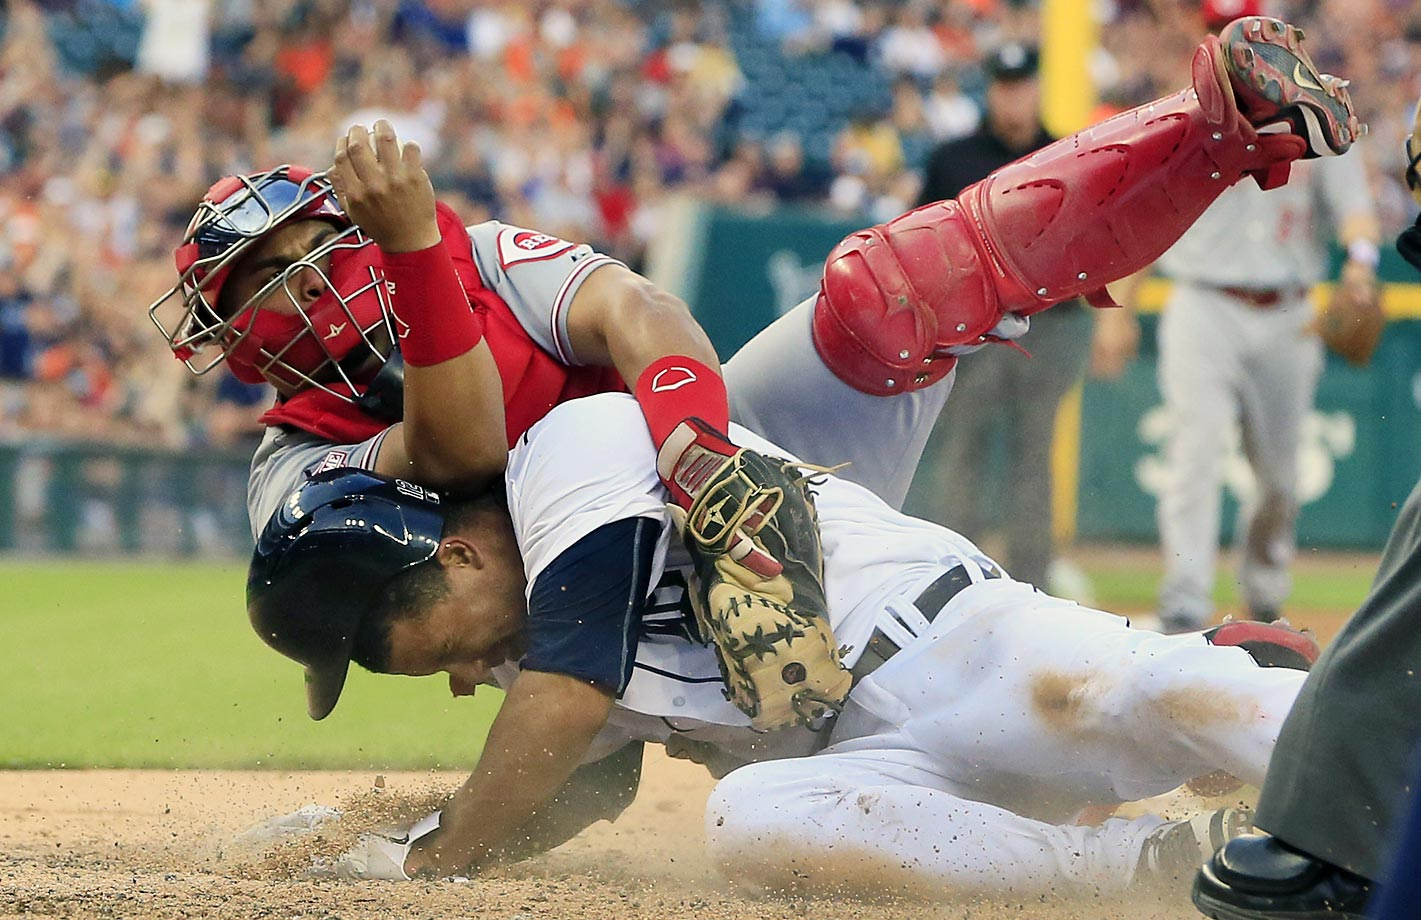 Anthony Gose of the Detroit Tigers is tagged out by Brayan Pena of the Cincinnati Reds.